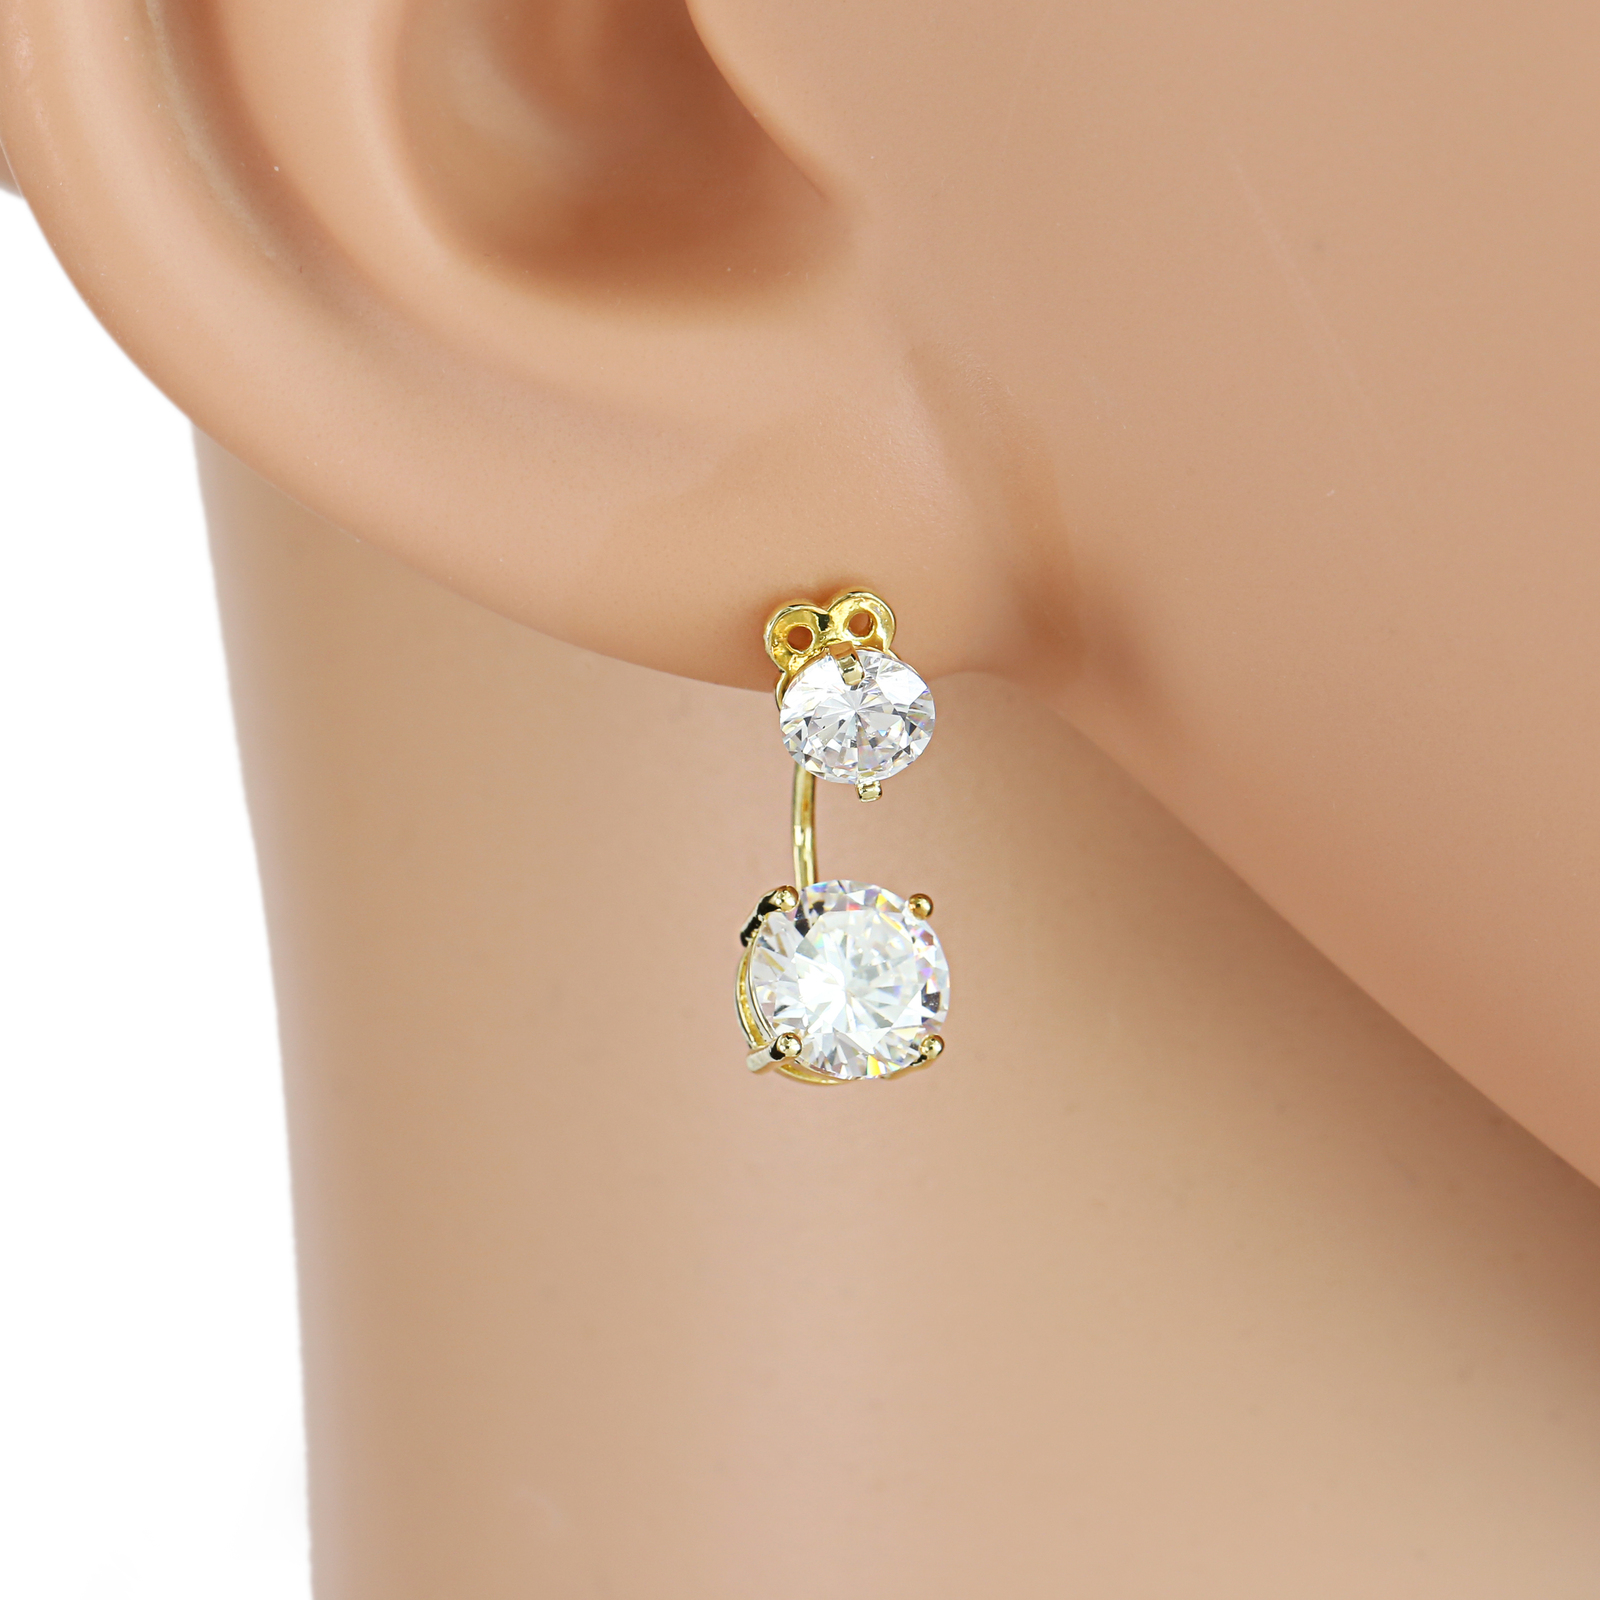 Primary image for UE- Striking Gold Tone Drop Earrings With Sparkling Faux White Sapphire Studs